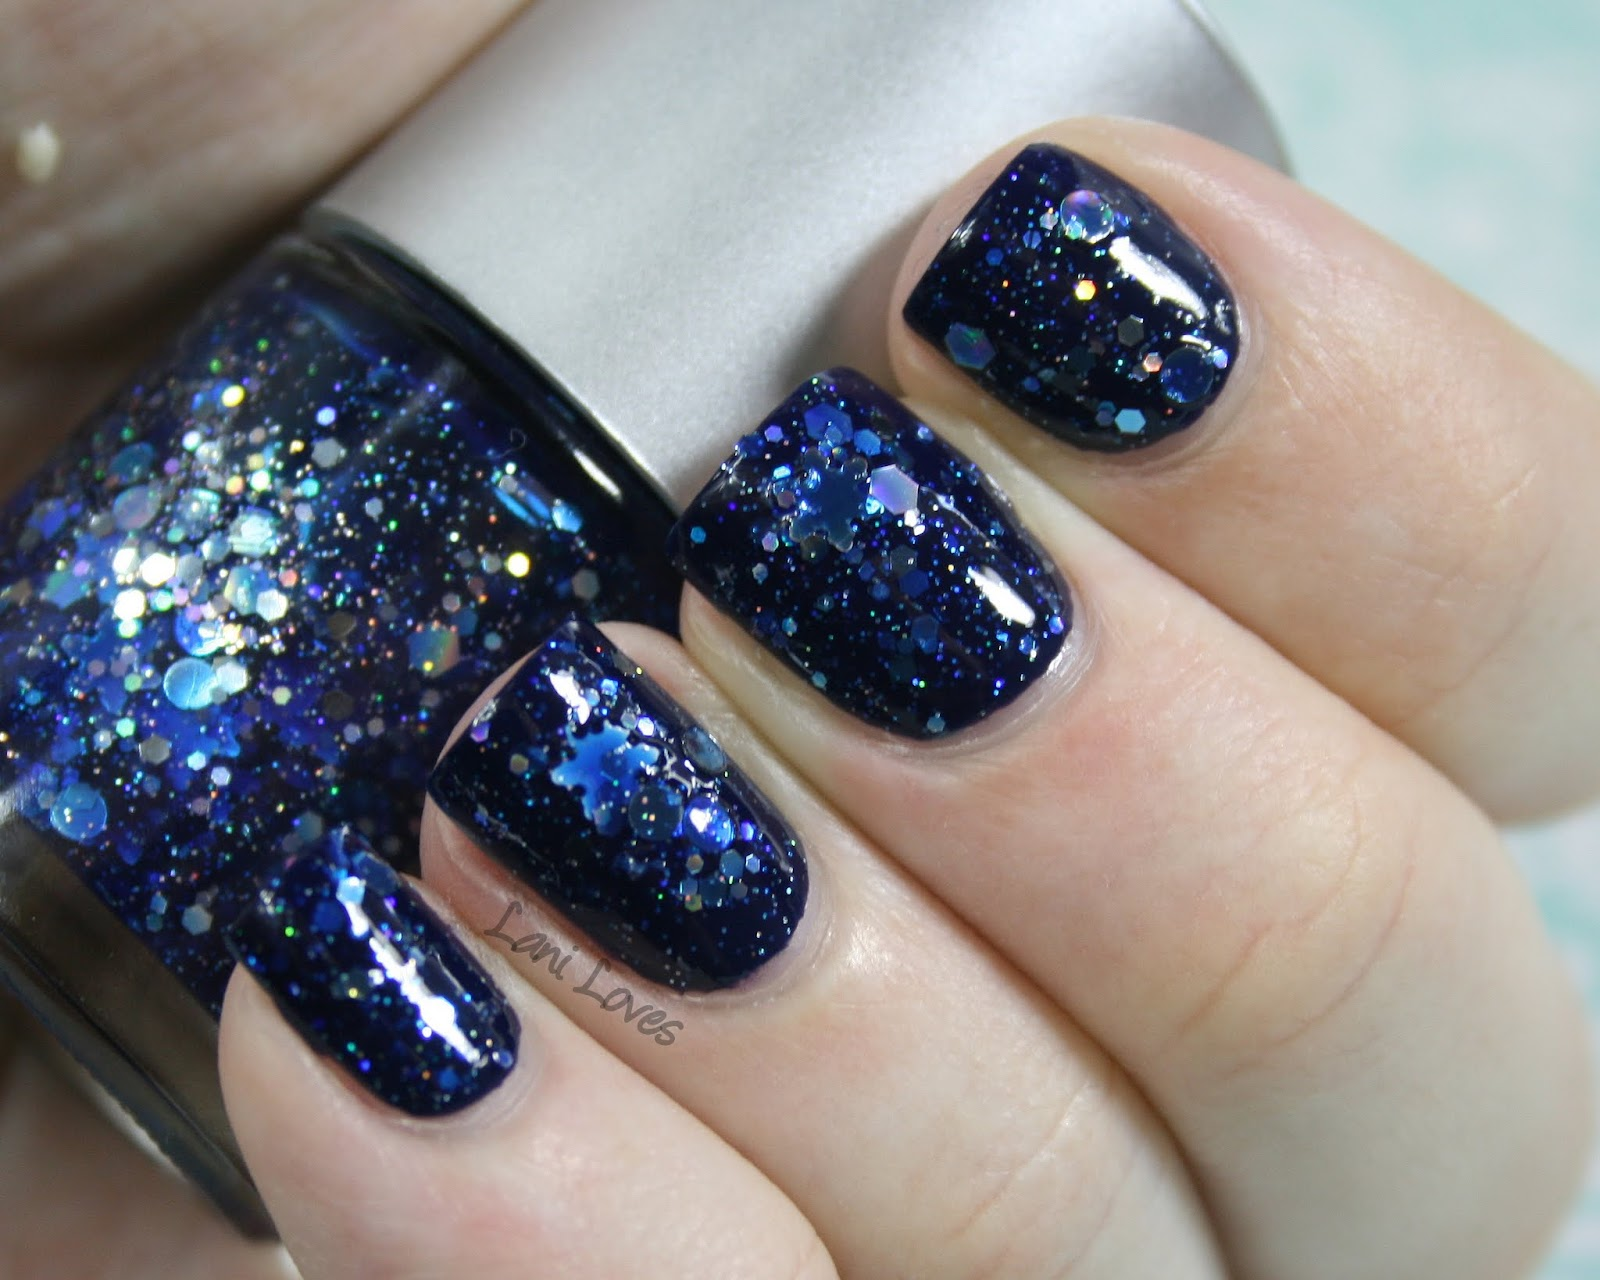 NZ Indie Polish Month Star Kin - Glitter Wonderland Nail Polish Swatches U0026 Review - Lani Loves